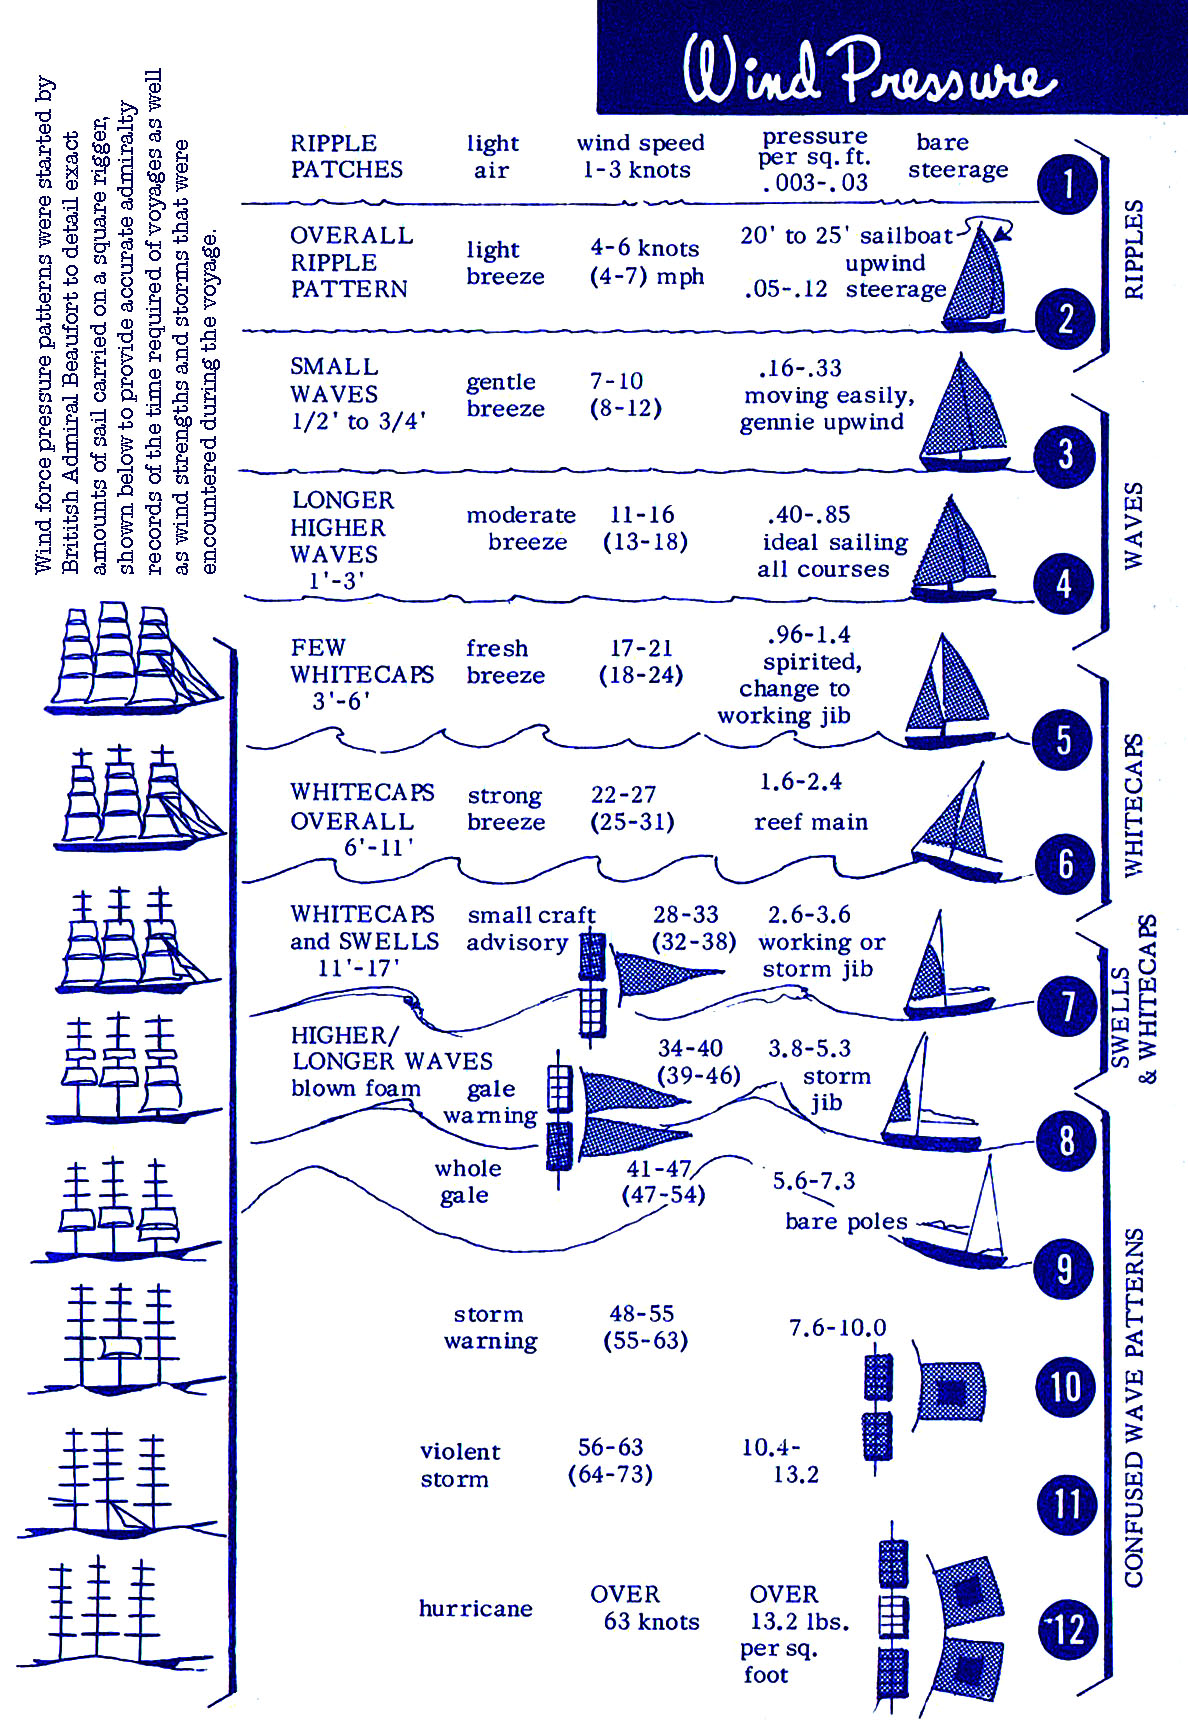 Sailing Wind Pressure Beaufort Scale